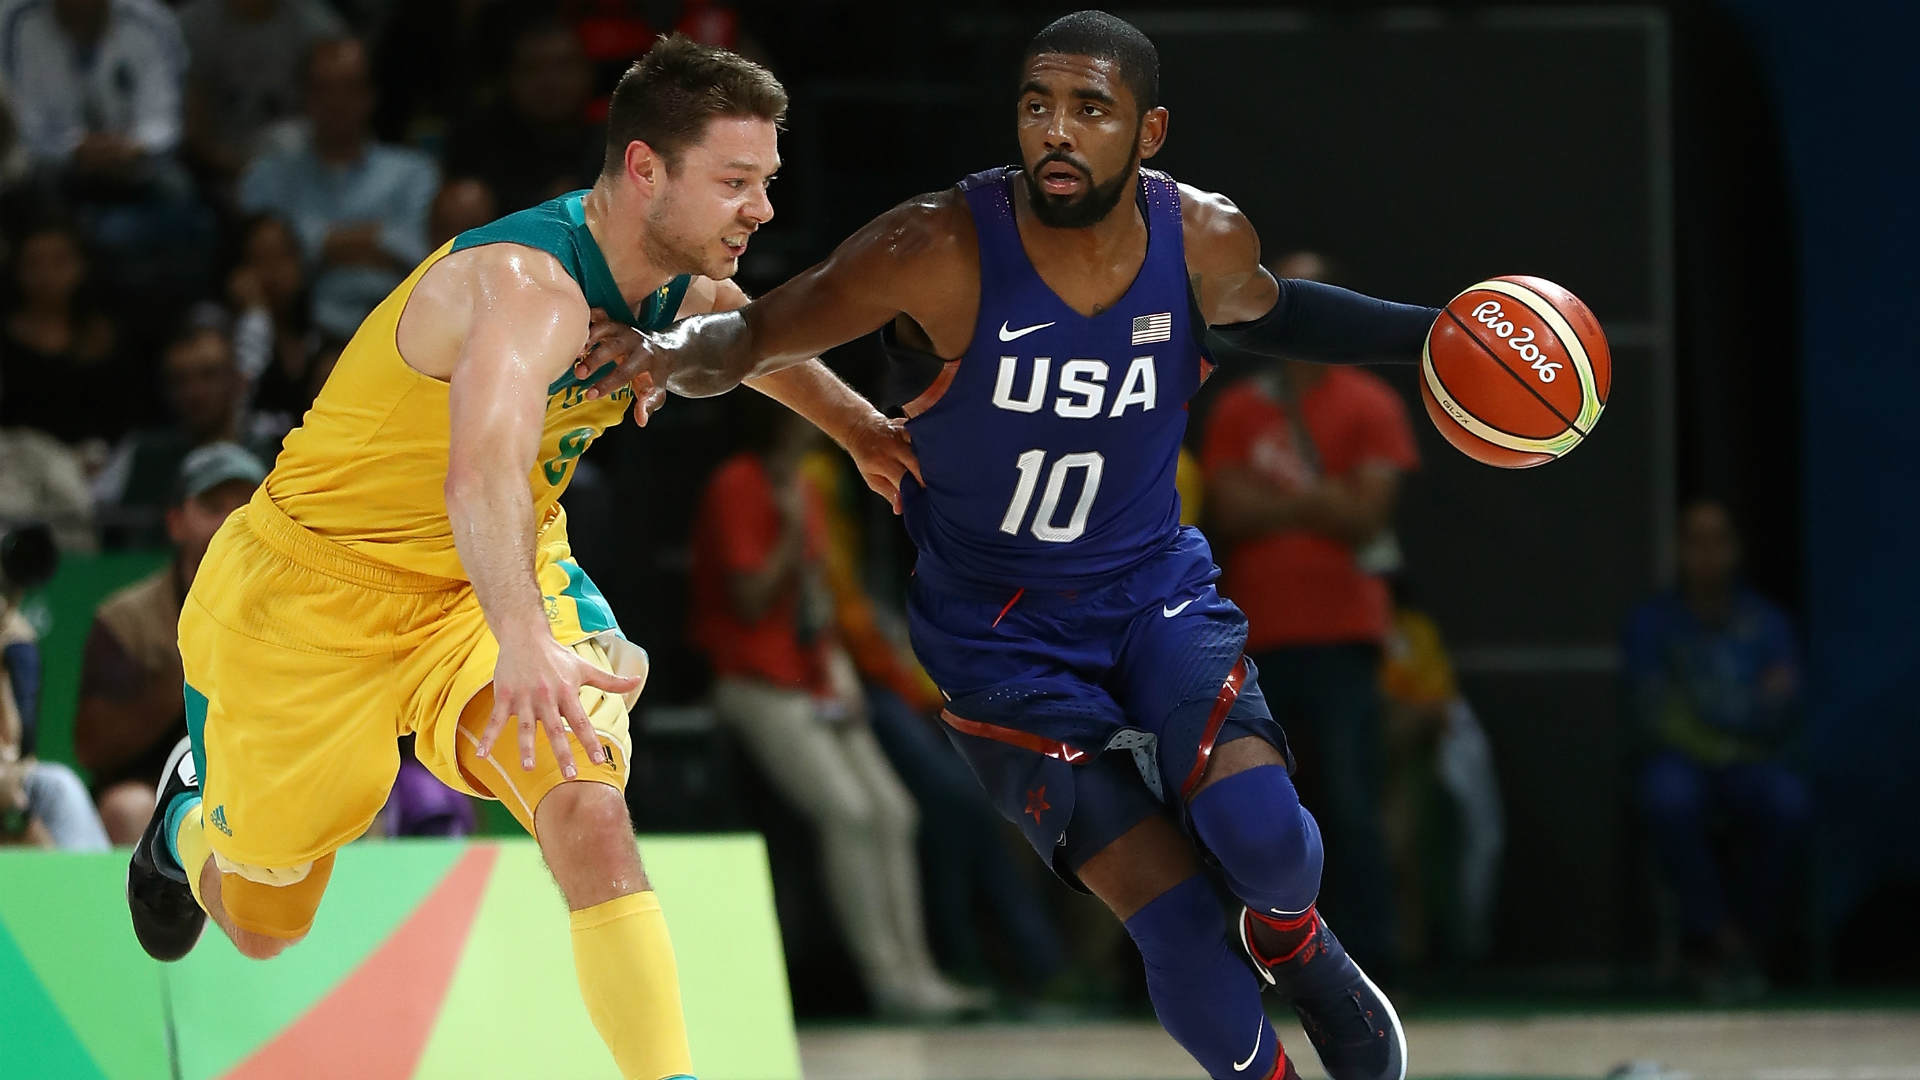 Carmelo Anthony becomes the United States' all-time leading scorer in the Olympics